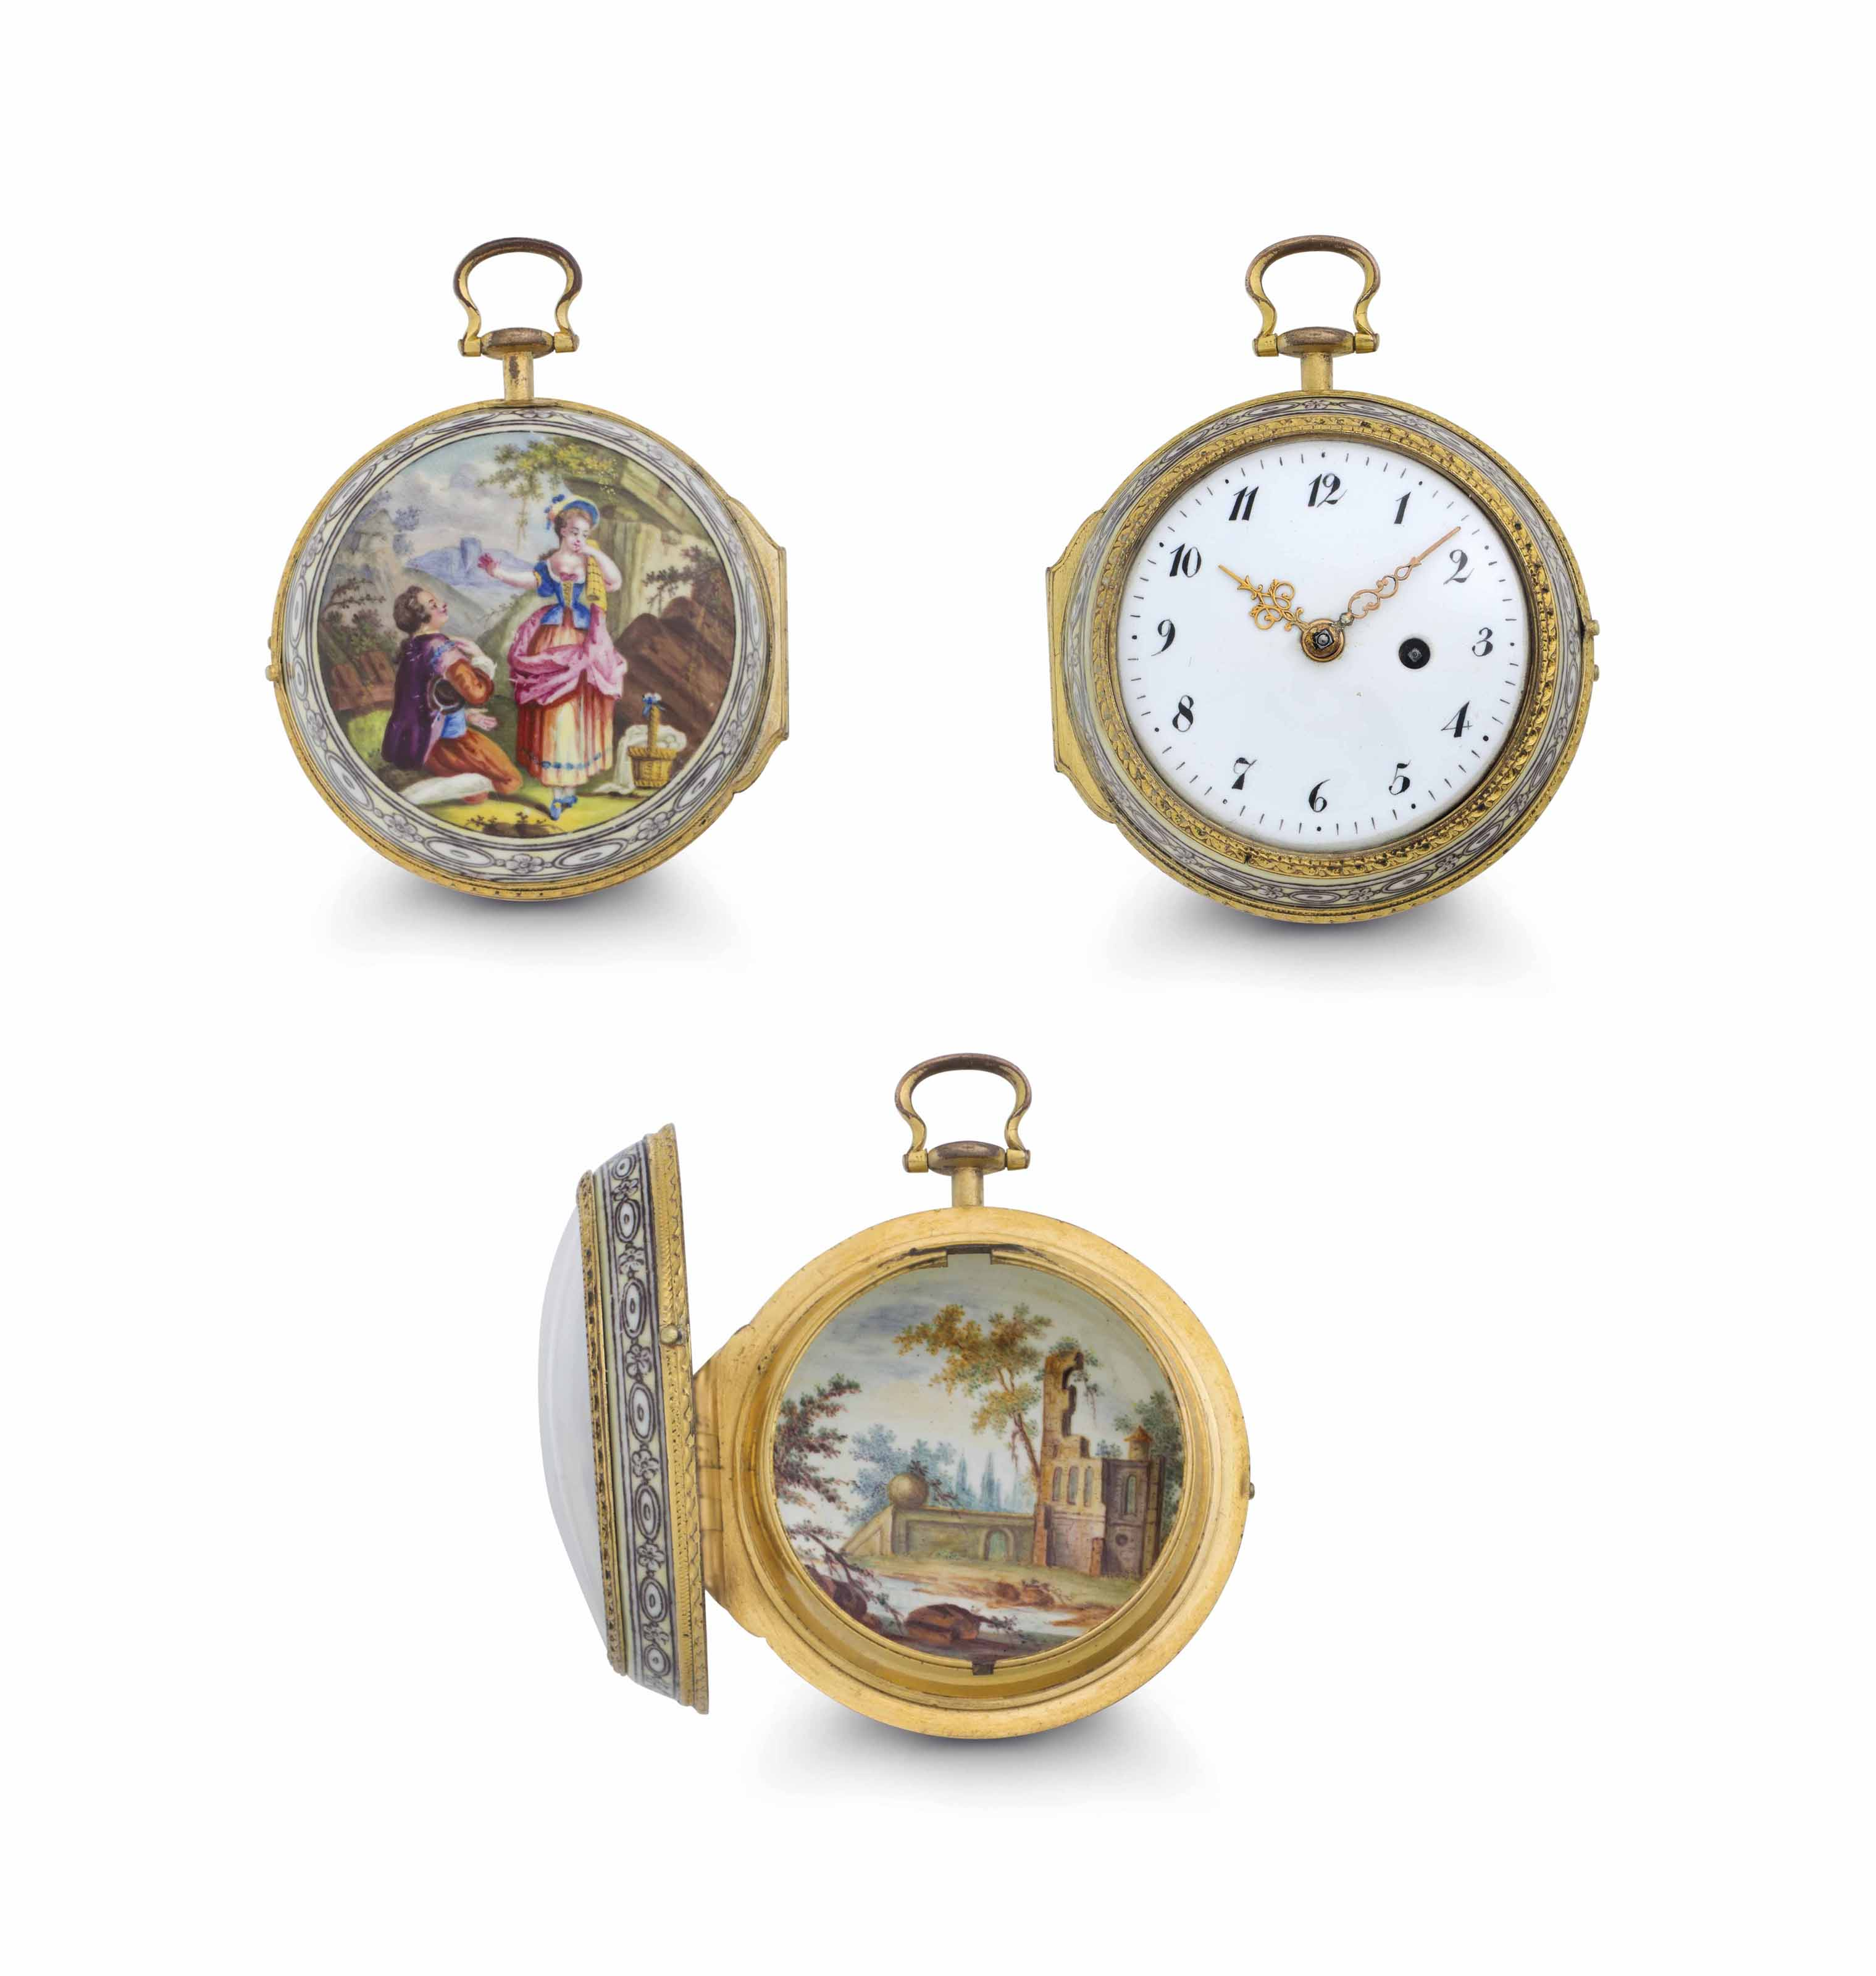 Williamson.  A Fine and Rare Gilt and Porcelain Enamel Openface Verge Pocket Watch